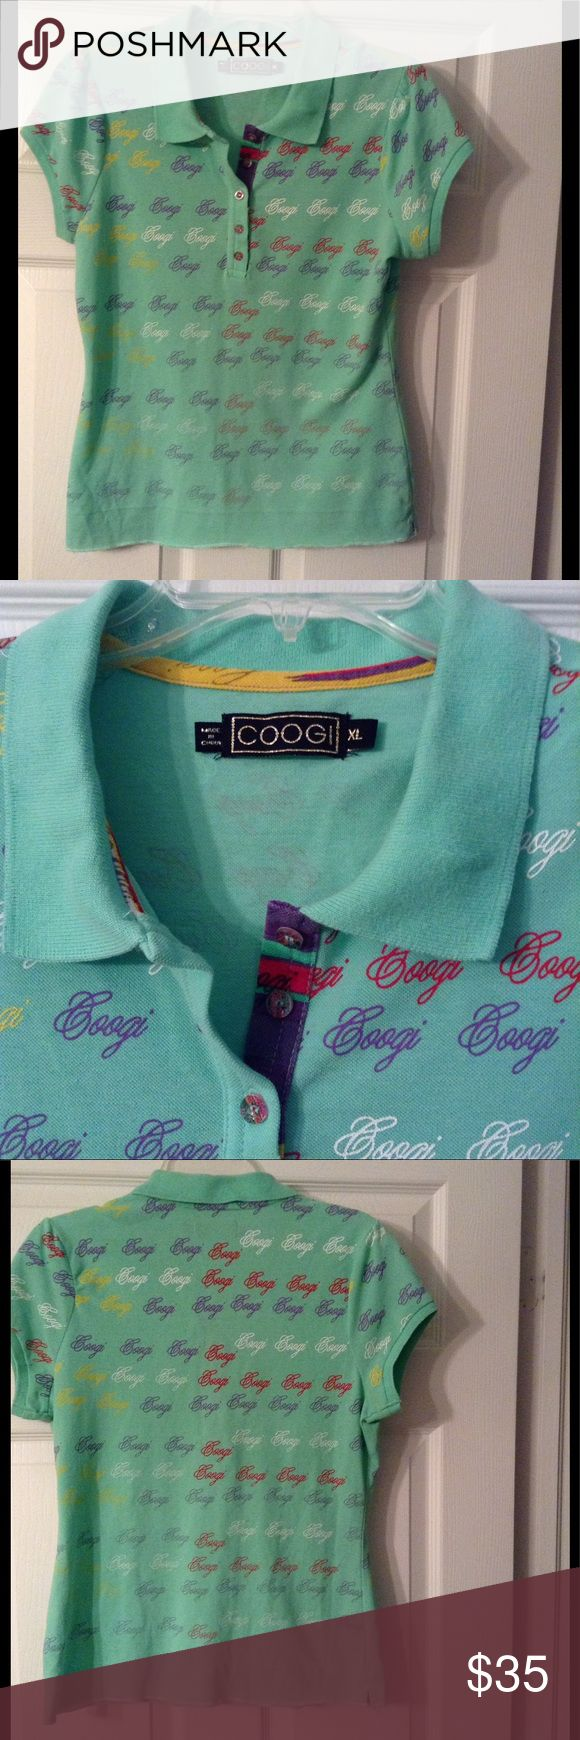 Mint Green Coogi Polo Shirt Pretty mint green polo shirt, has Coogi logo on back and front of shirt in all different colors.  There is a slight fading on the line of the collar where it folds, as shown in pics.  This isn't seen because it is folded.  In addition, it appears that the hem was let out, as the shirt is not hemmed.  Other than that, the shirt seems to be in very good condition.  Top is a size XL, that would fit a large better, as it tends to run a bit small.  Pix of patent…